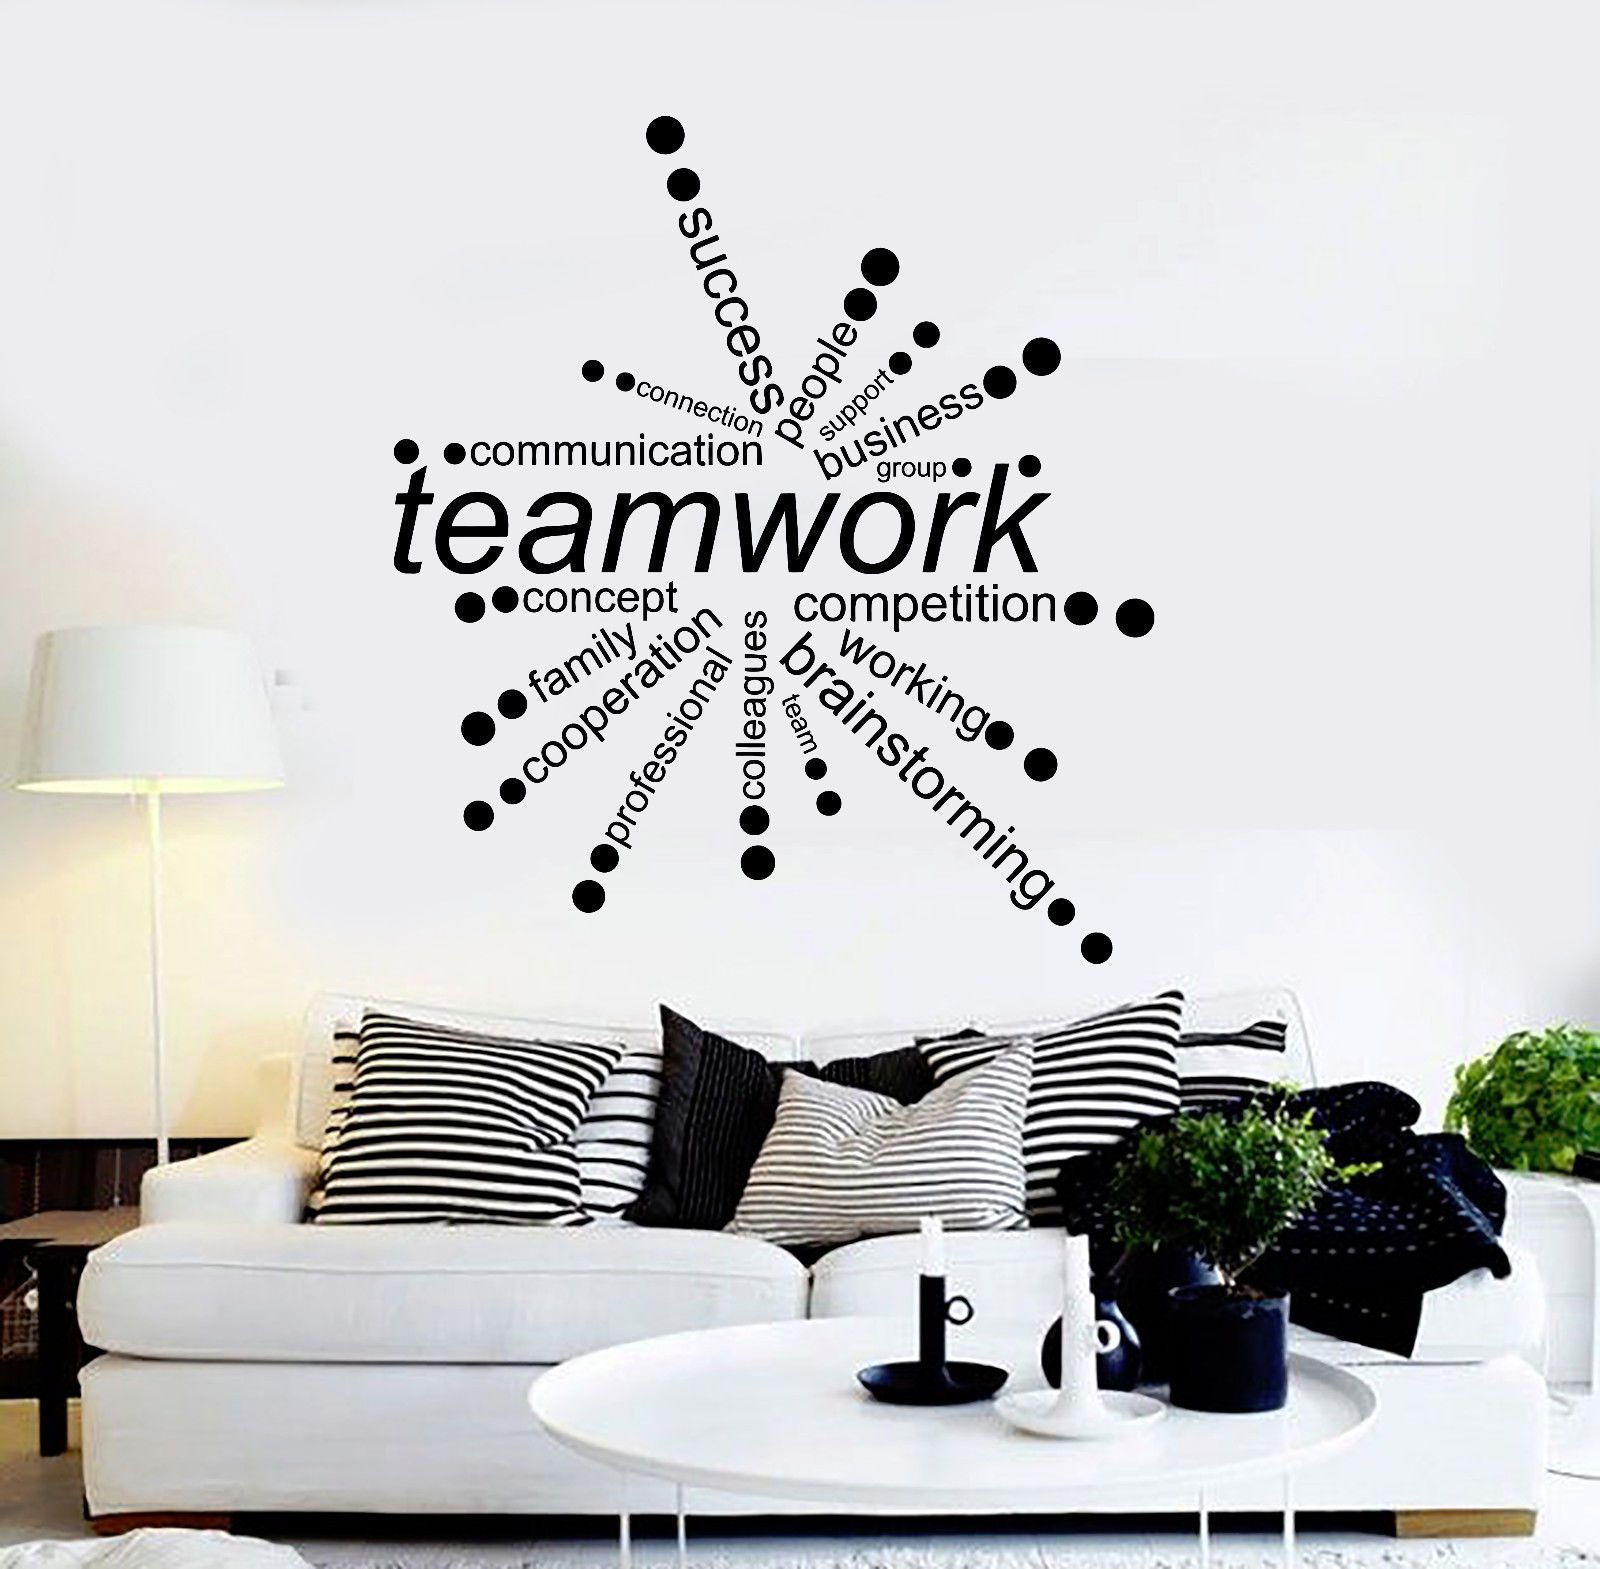 Vinyl Wall Decal Teamwork Words Office Decor Business Stickers (Ig4342)